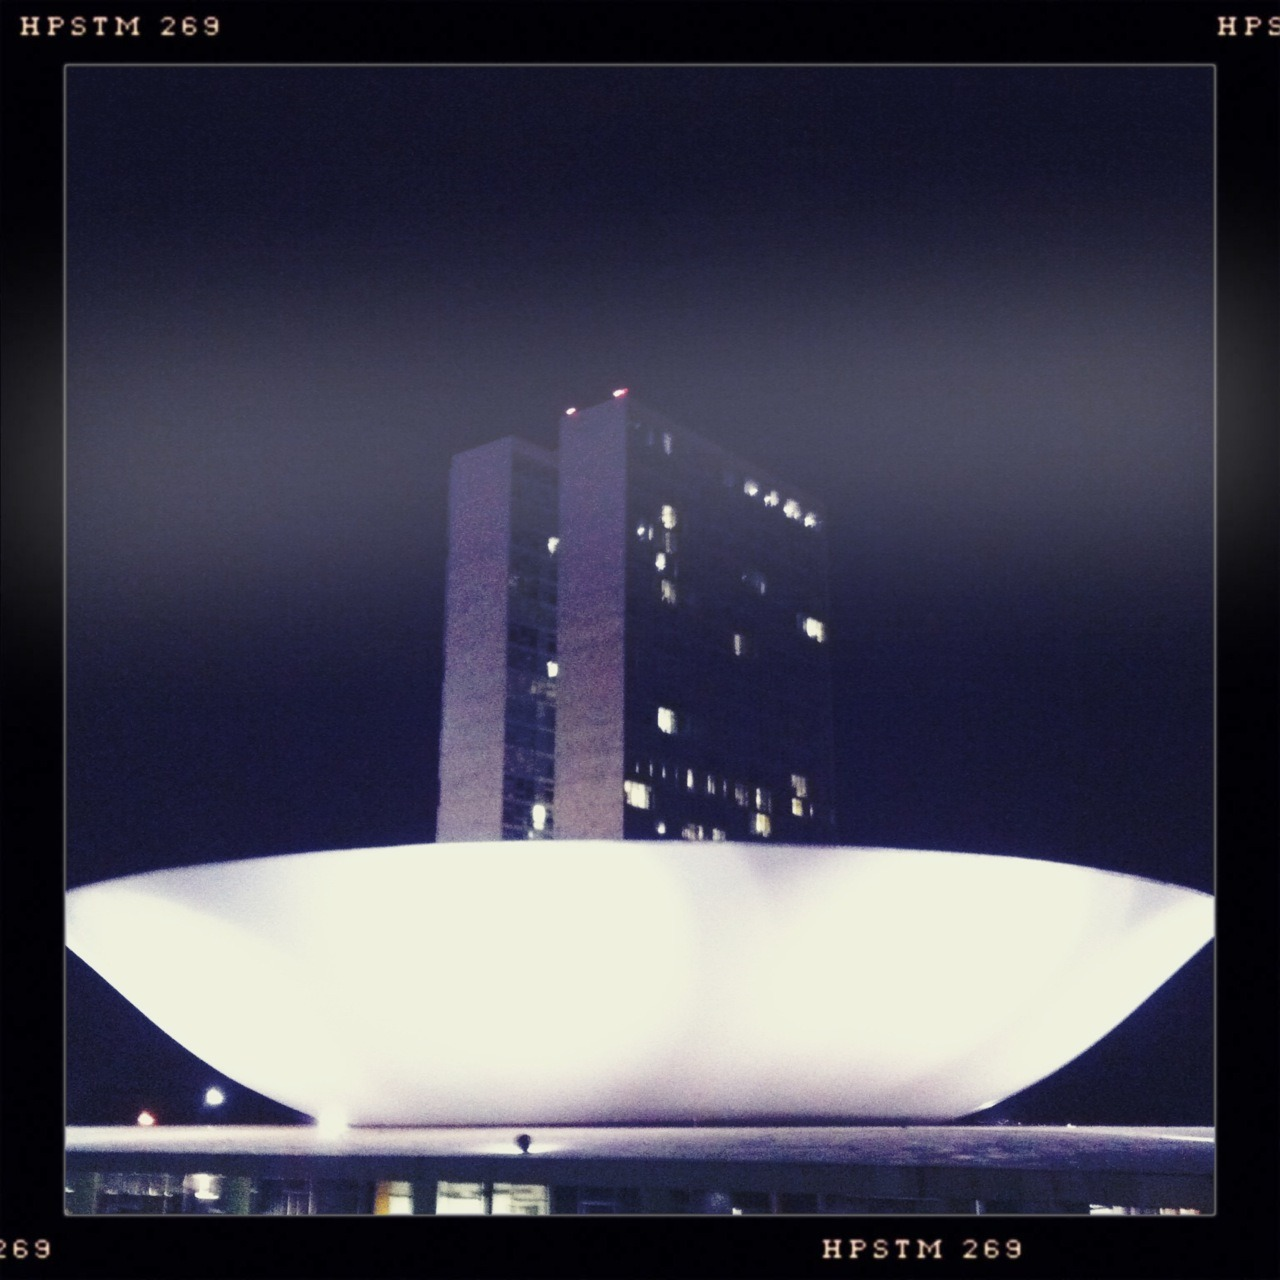 Congresso Nacional Helga Viking Lens, Pistil Film, No Flash, Taken with Hipstamatic